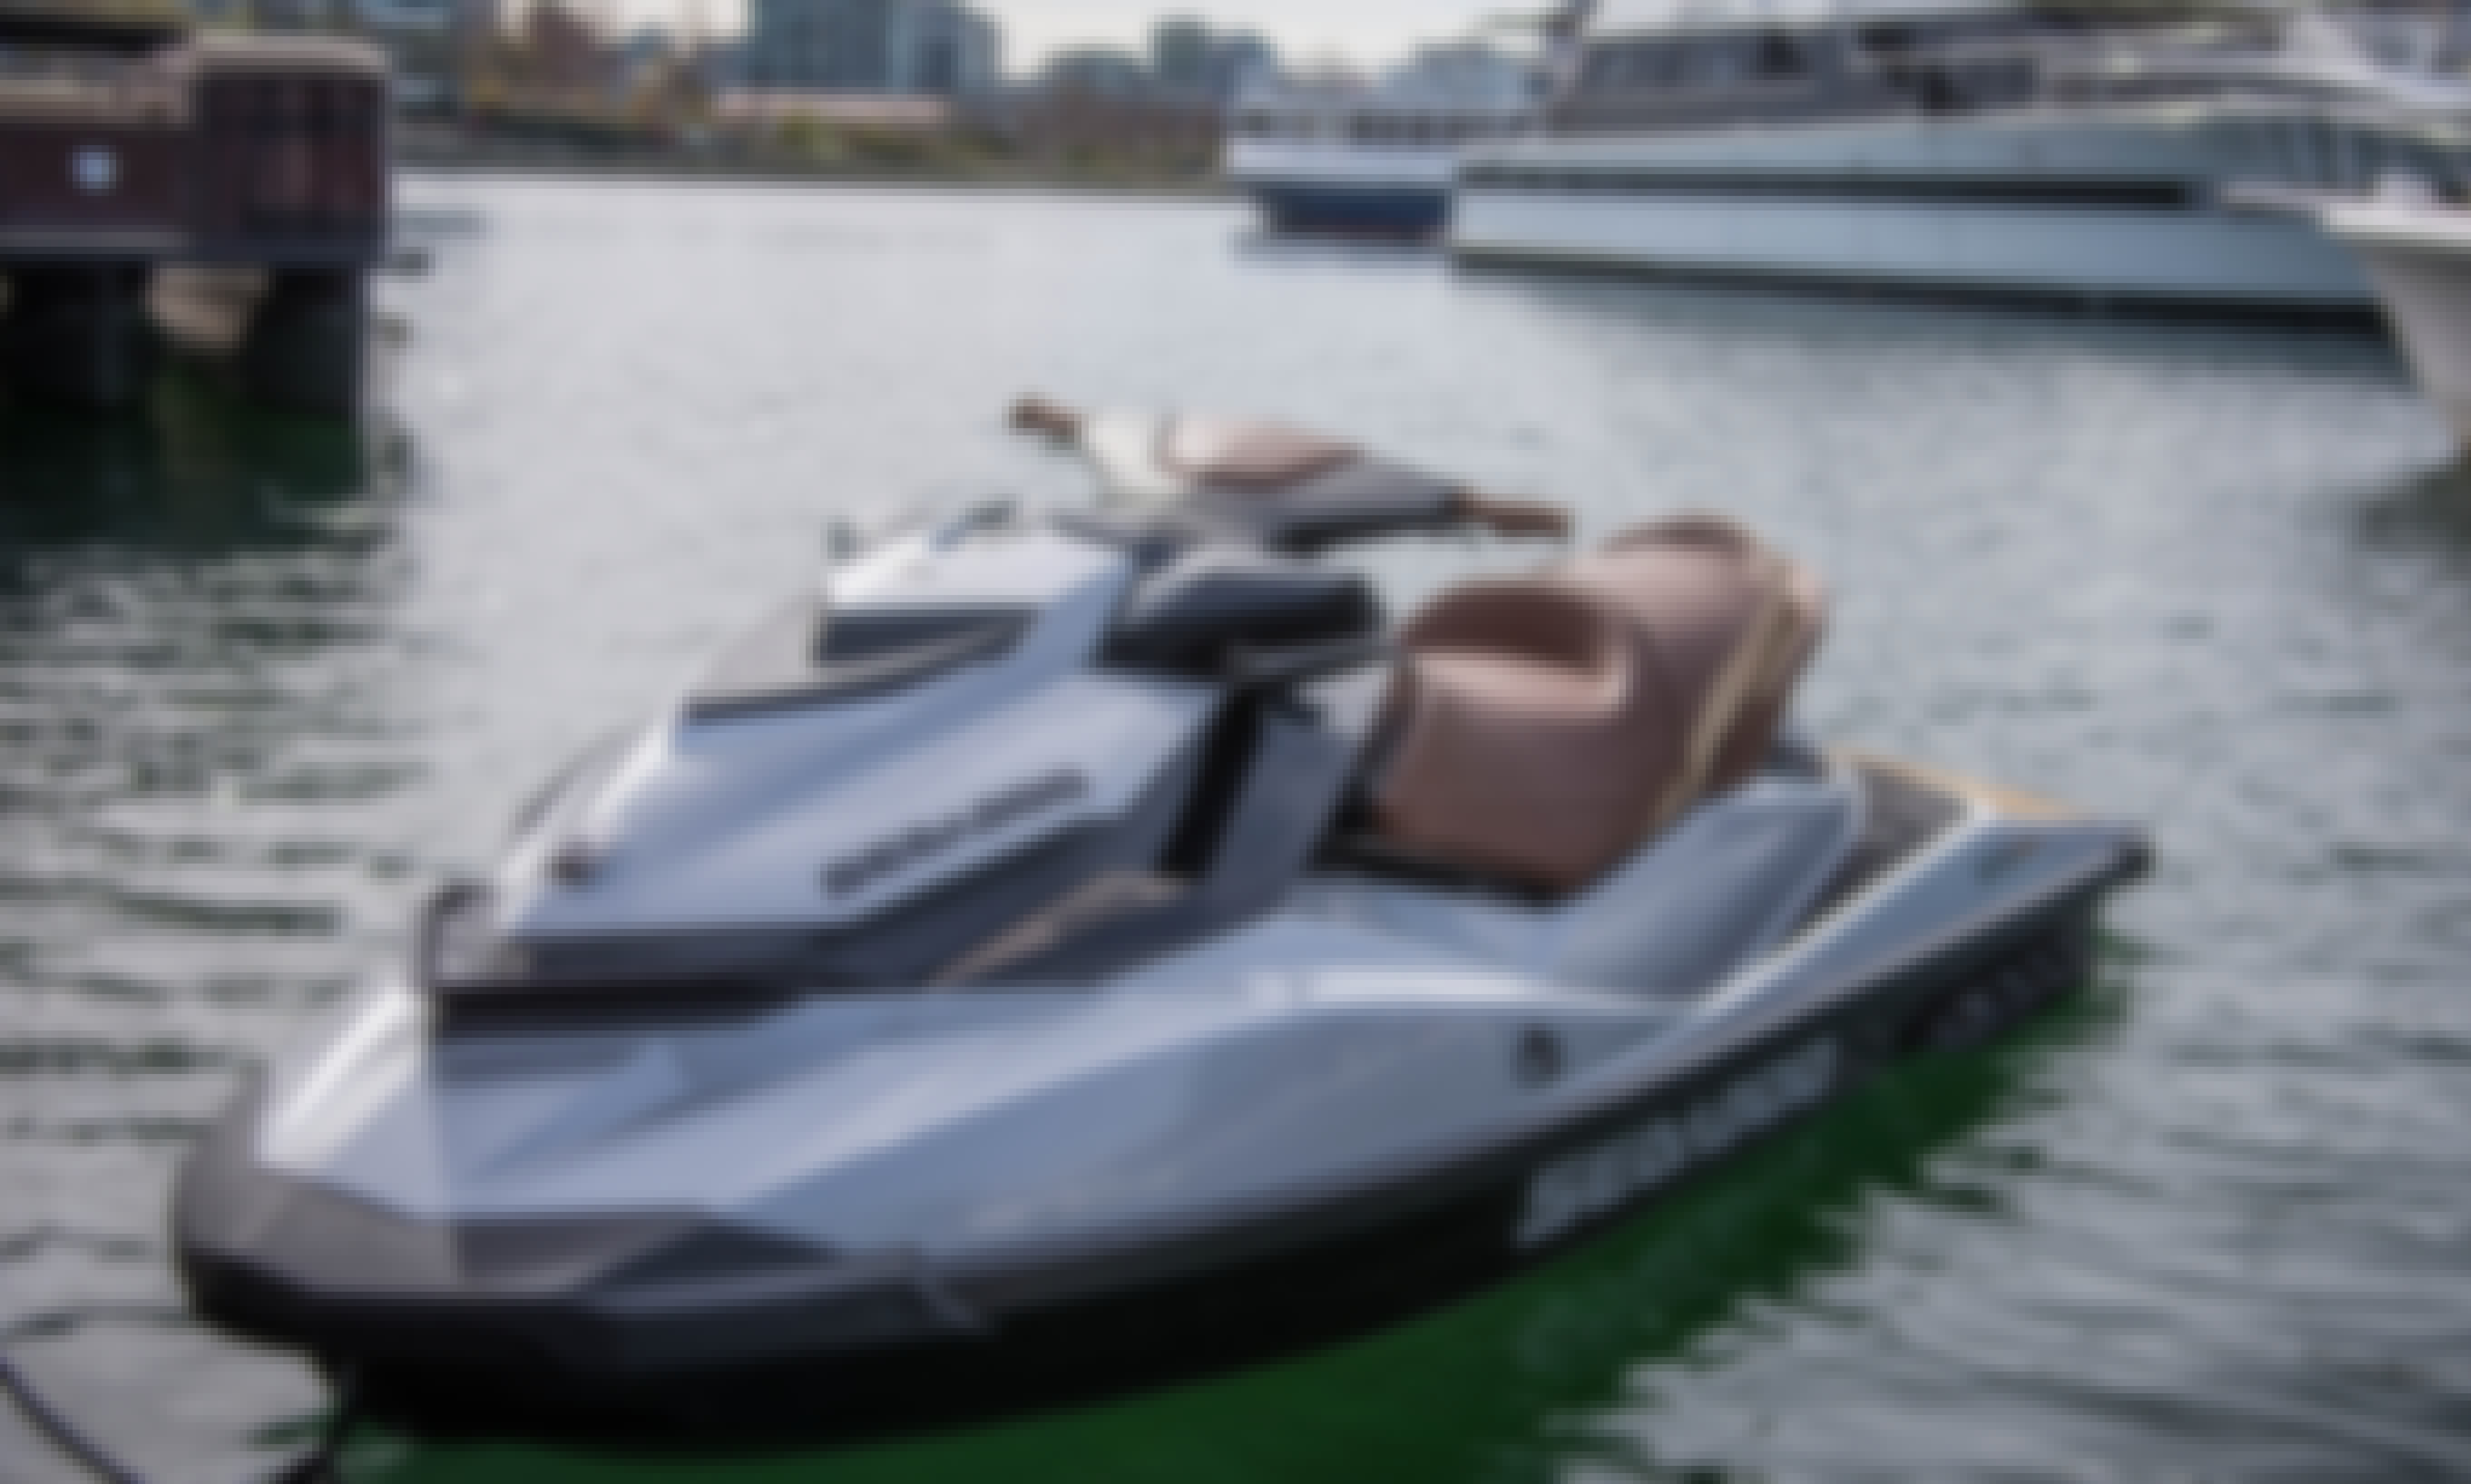 Hire a 2018 Seadoo GTI 155 Limited Edition Jet Ski in Vancouver, British Columbia